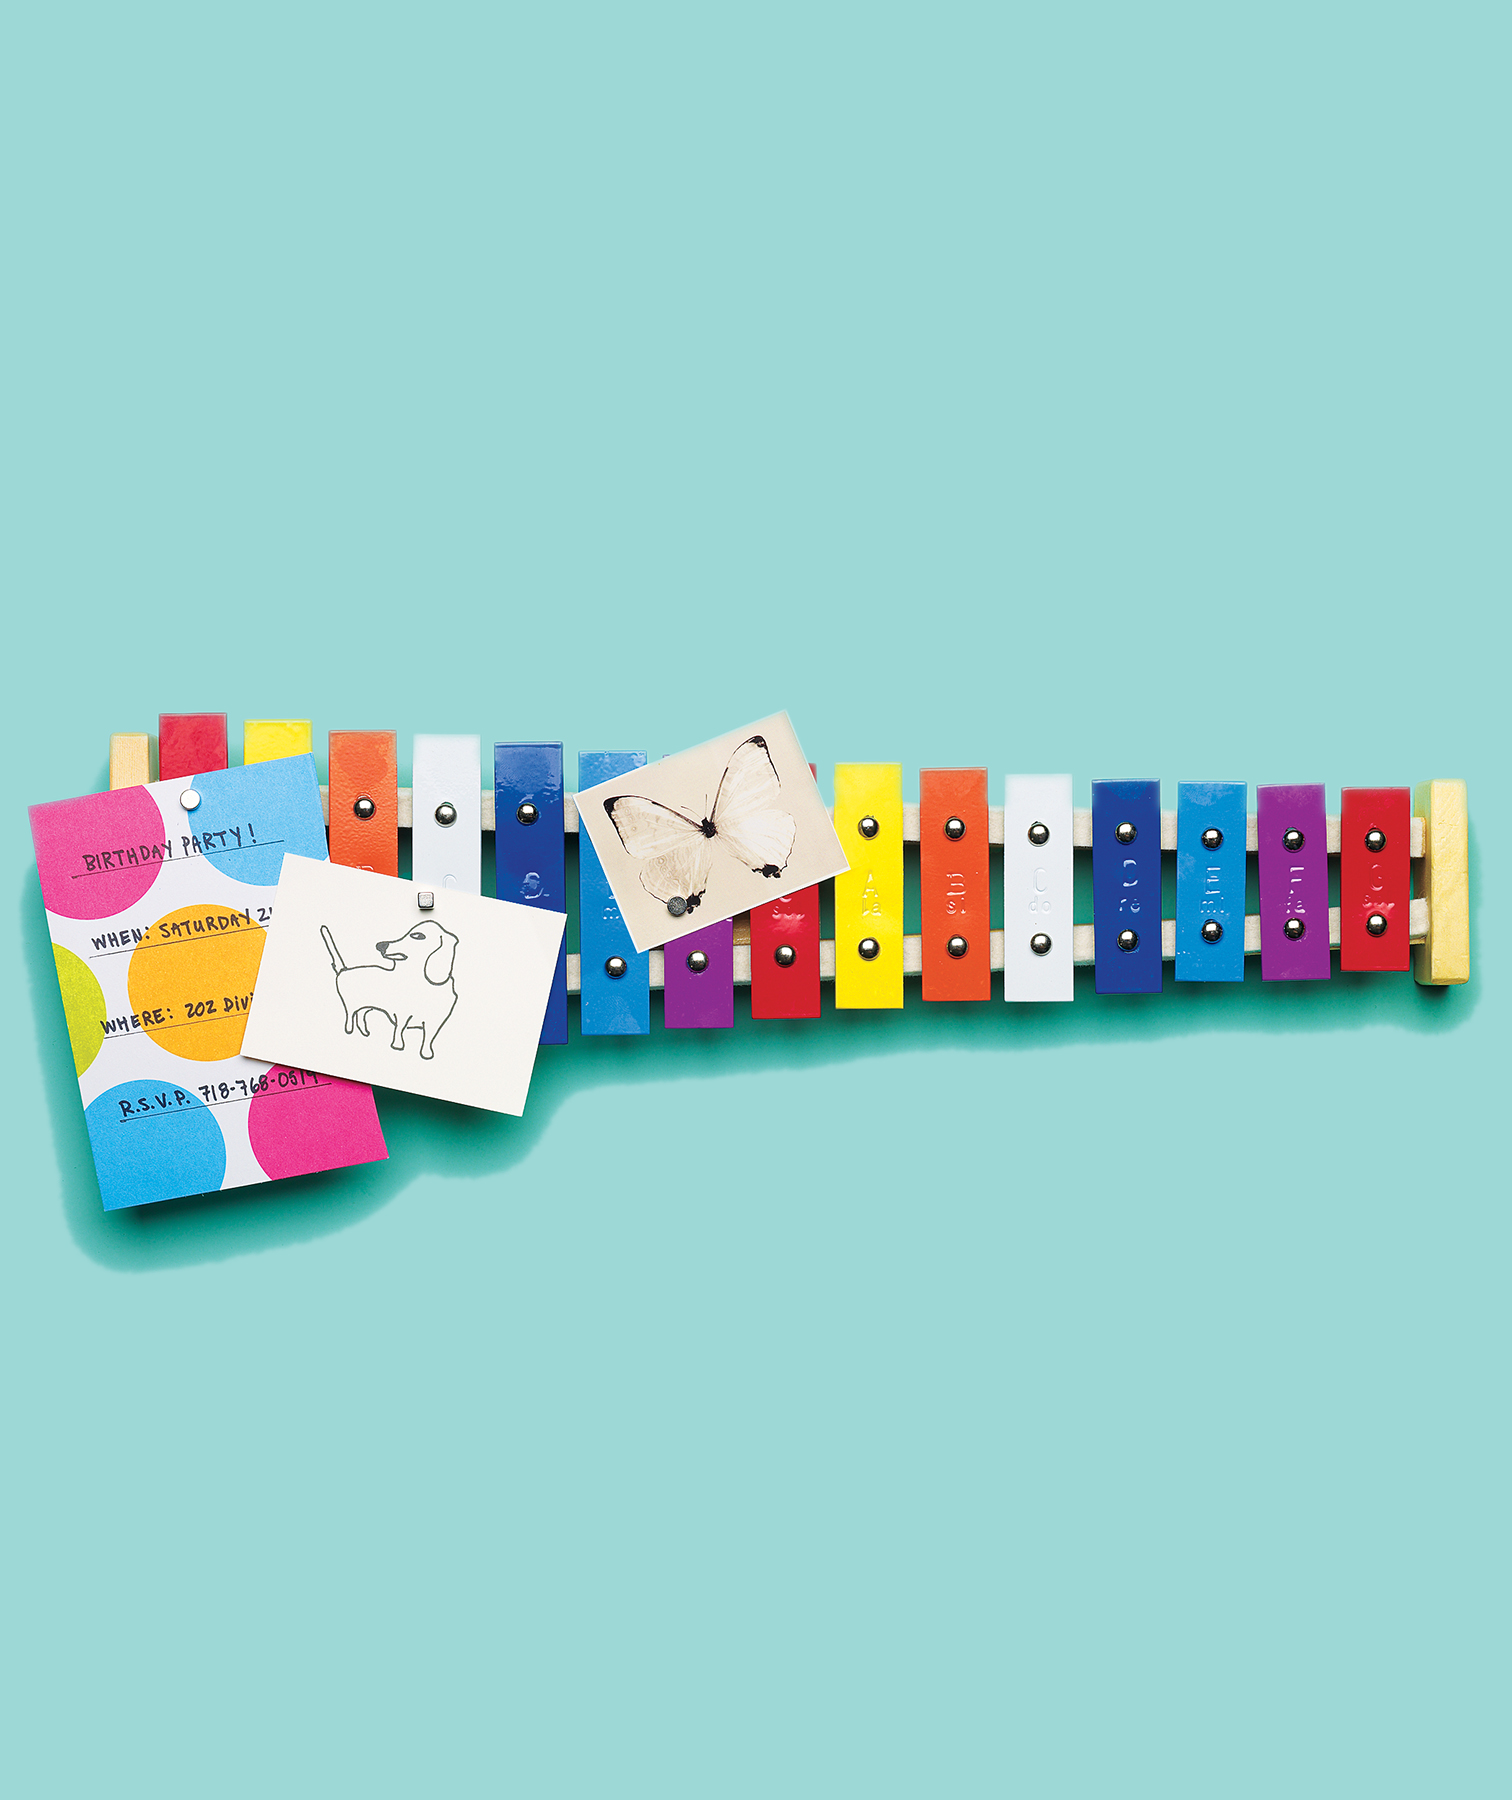 Xylophone as message board